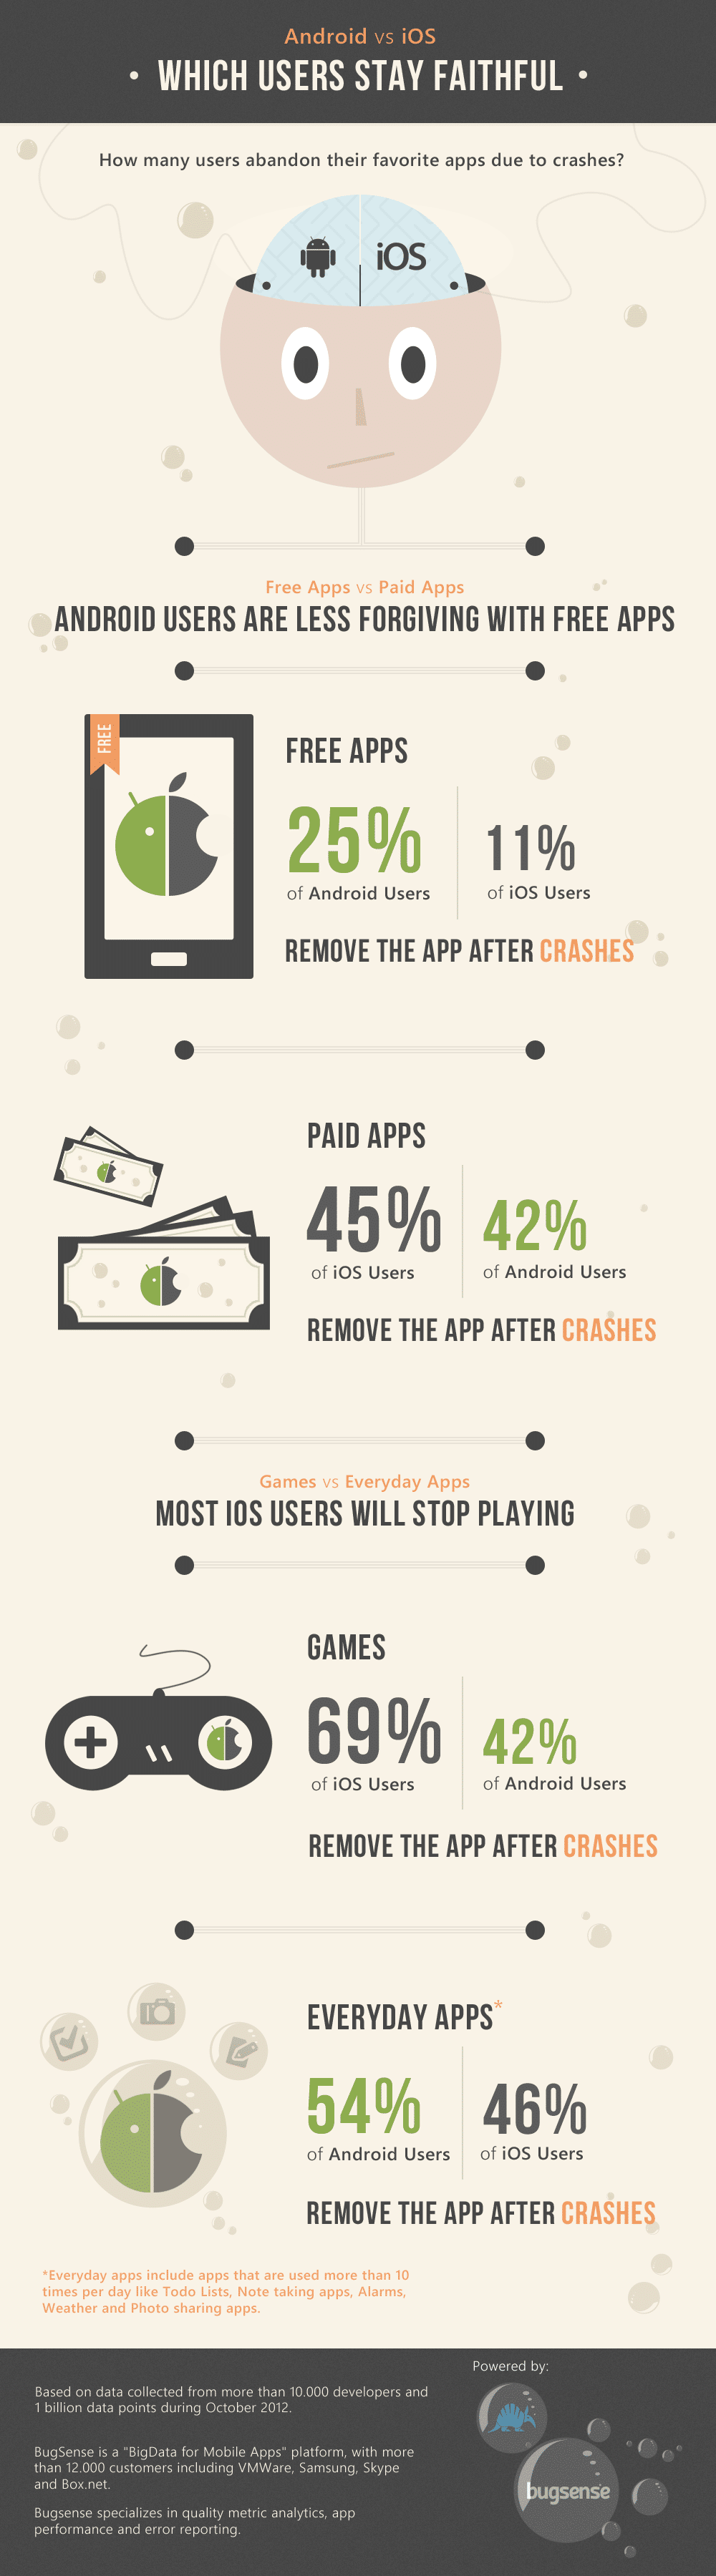 android-vs.-iOS-loyalty-infographic